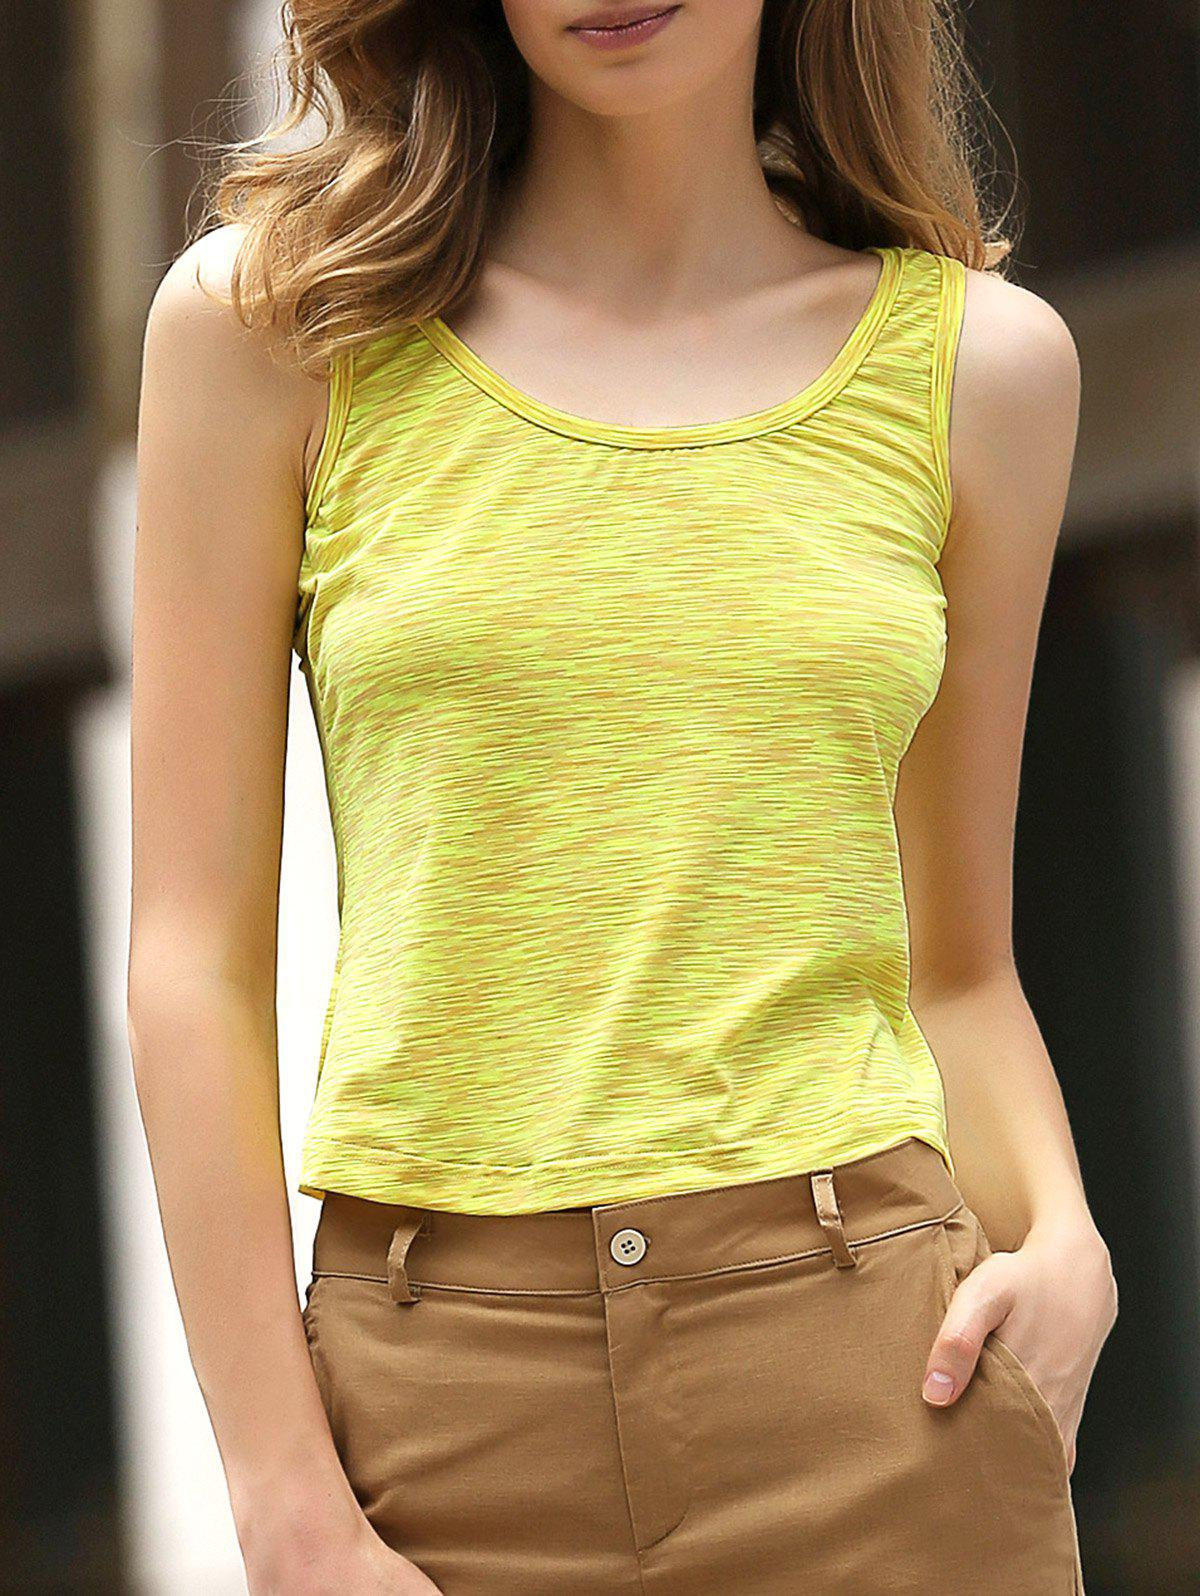 Simple Scoop Collar Sleeveless Cotton Blend Women Tank Top - YELLOW M